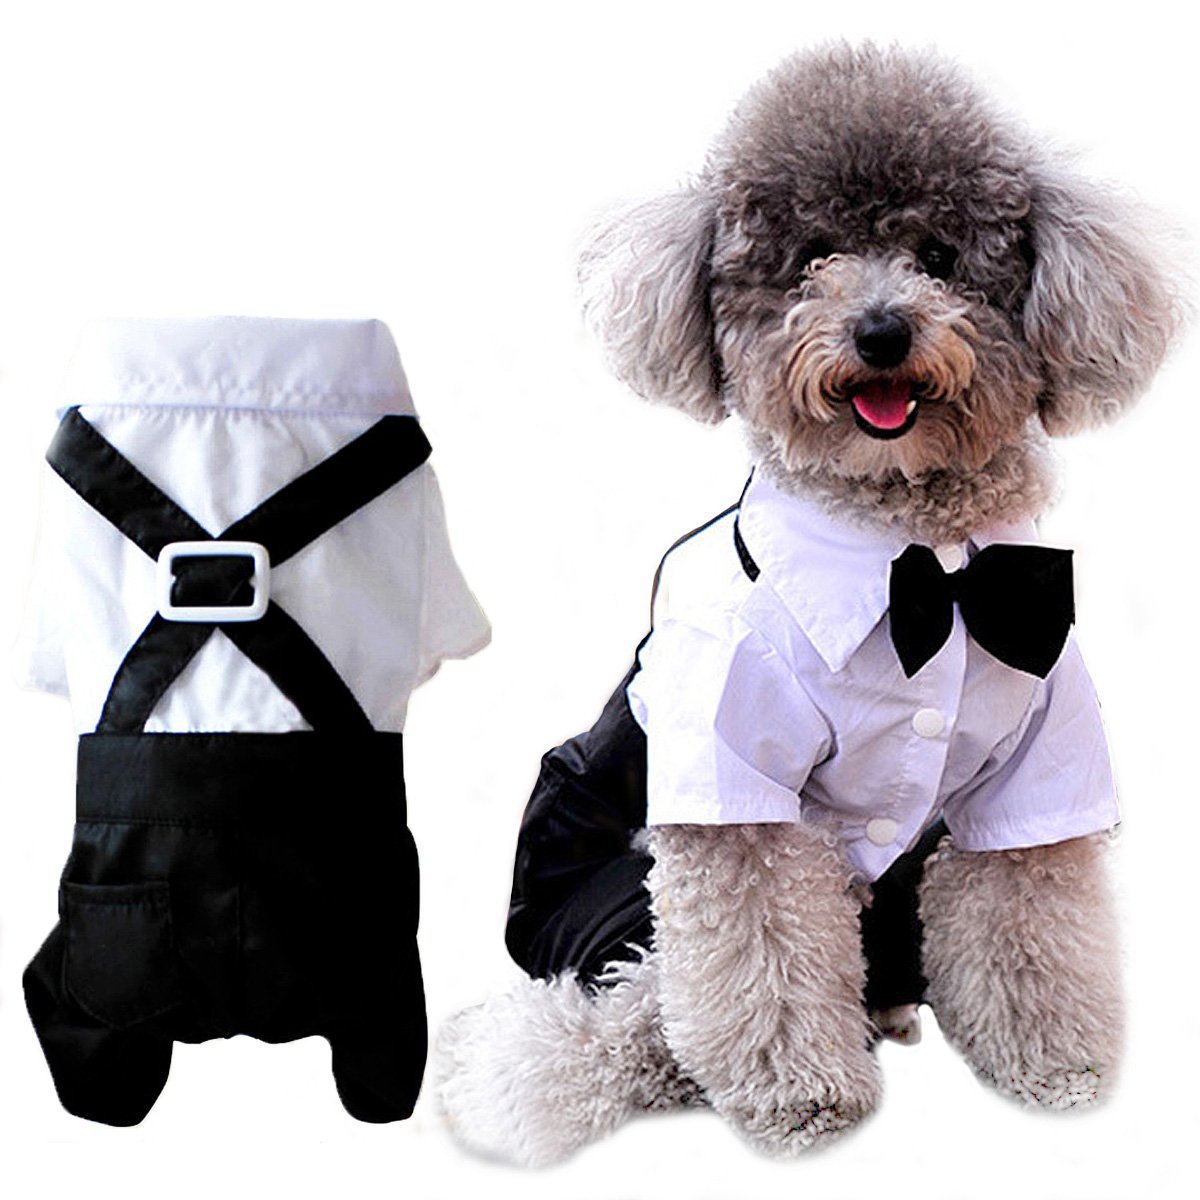 ANSIMITE bow tie is Mecha cute dog cat clothes tuxedo tailcoat black ribbon small and medium large size variety there you black (M)